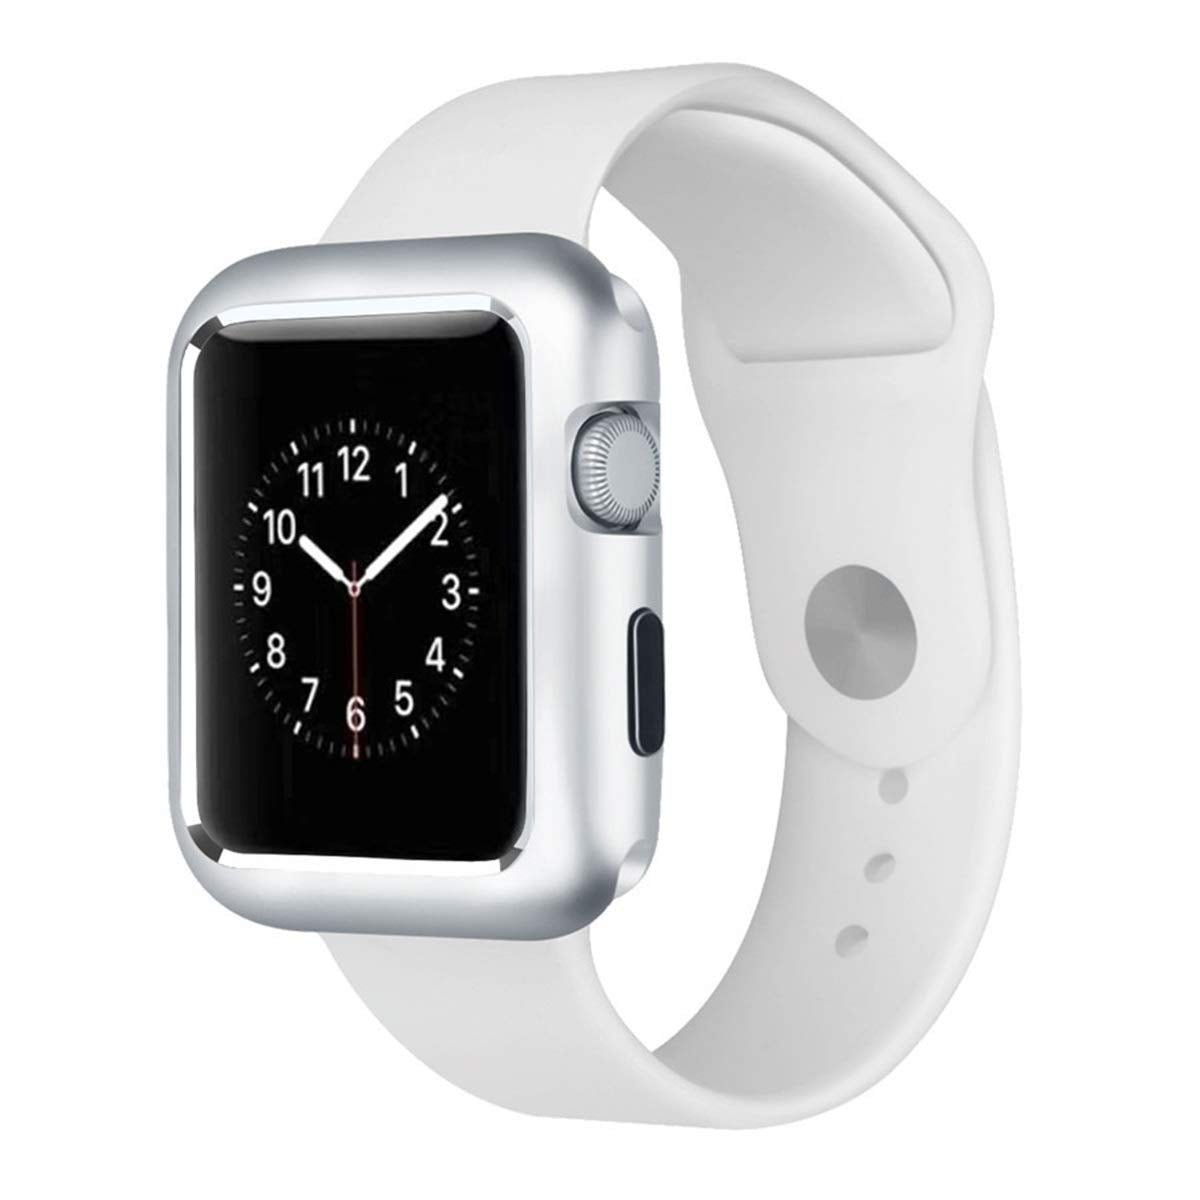 Magnetic Protective Apple Watch Cover